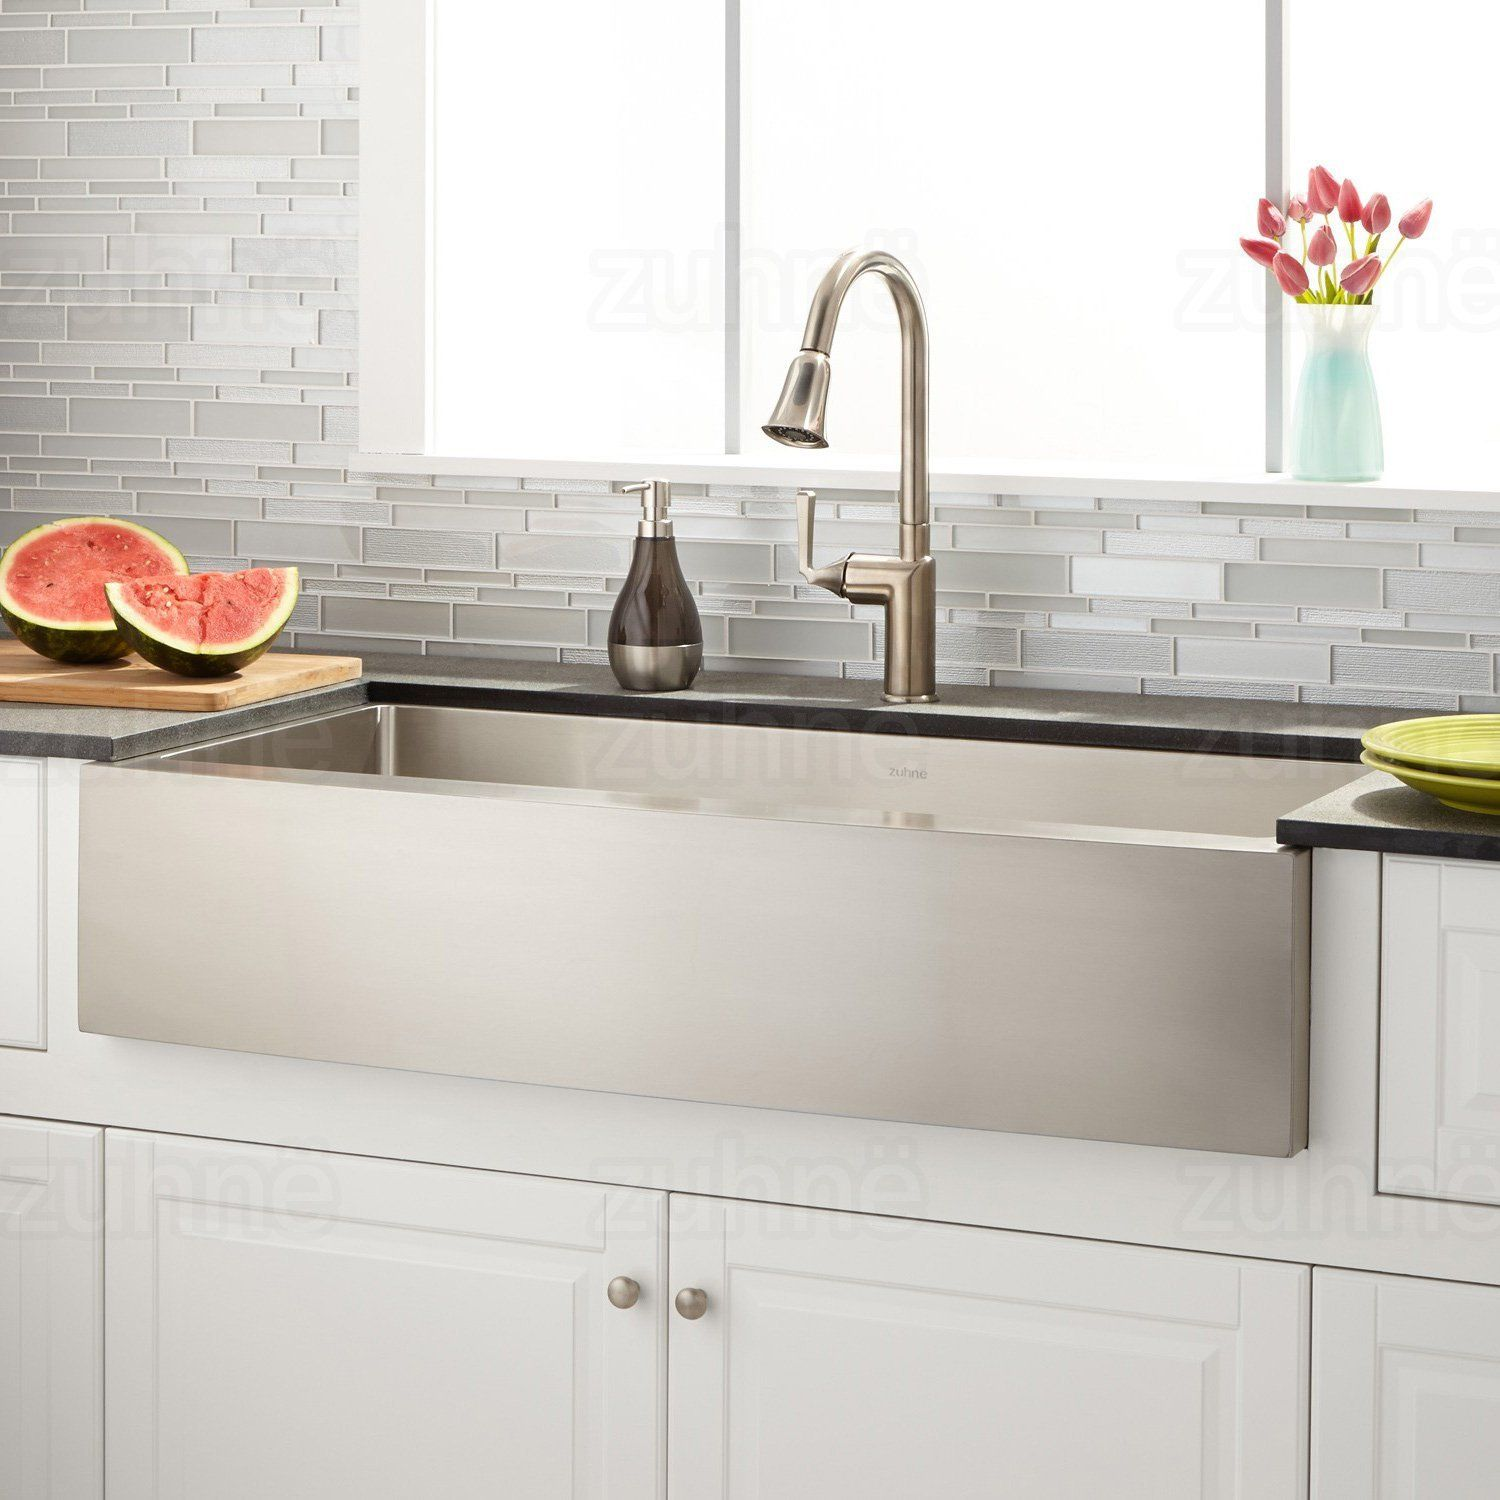 Best Stainless Steel Sinks 2018 - Uncle Paul\'s Top 5 Choices ...